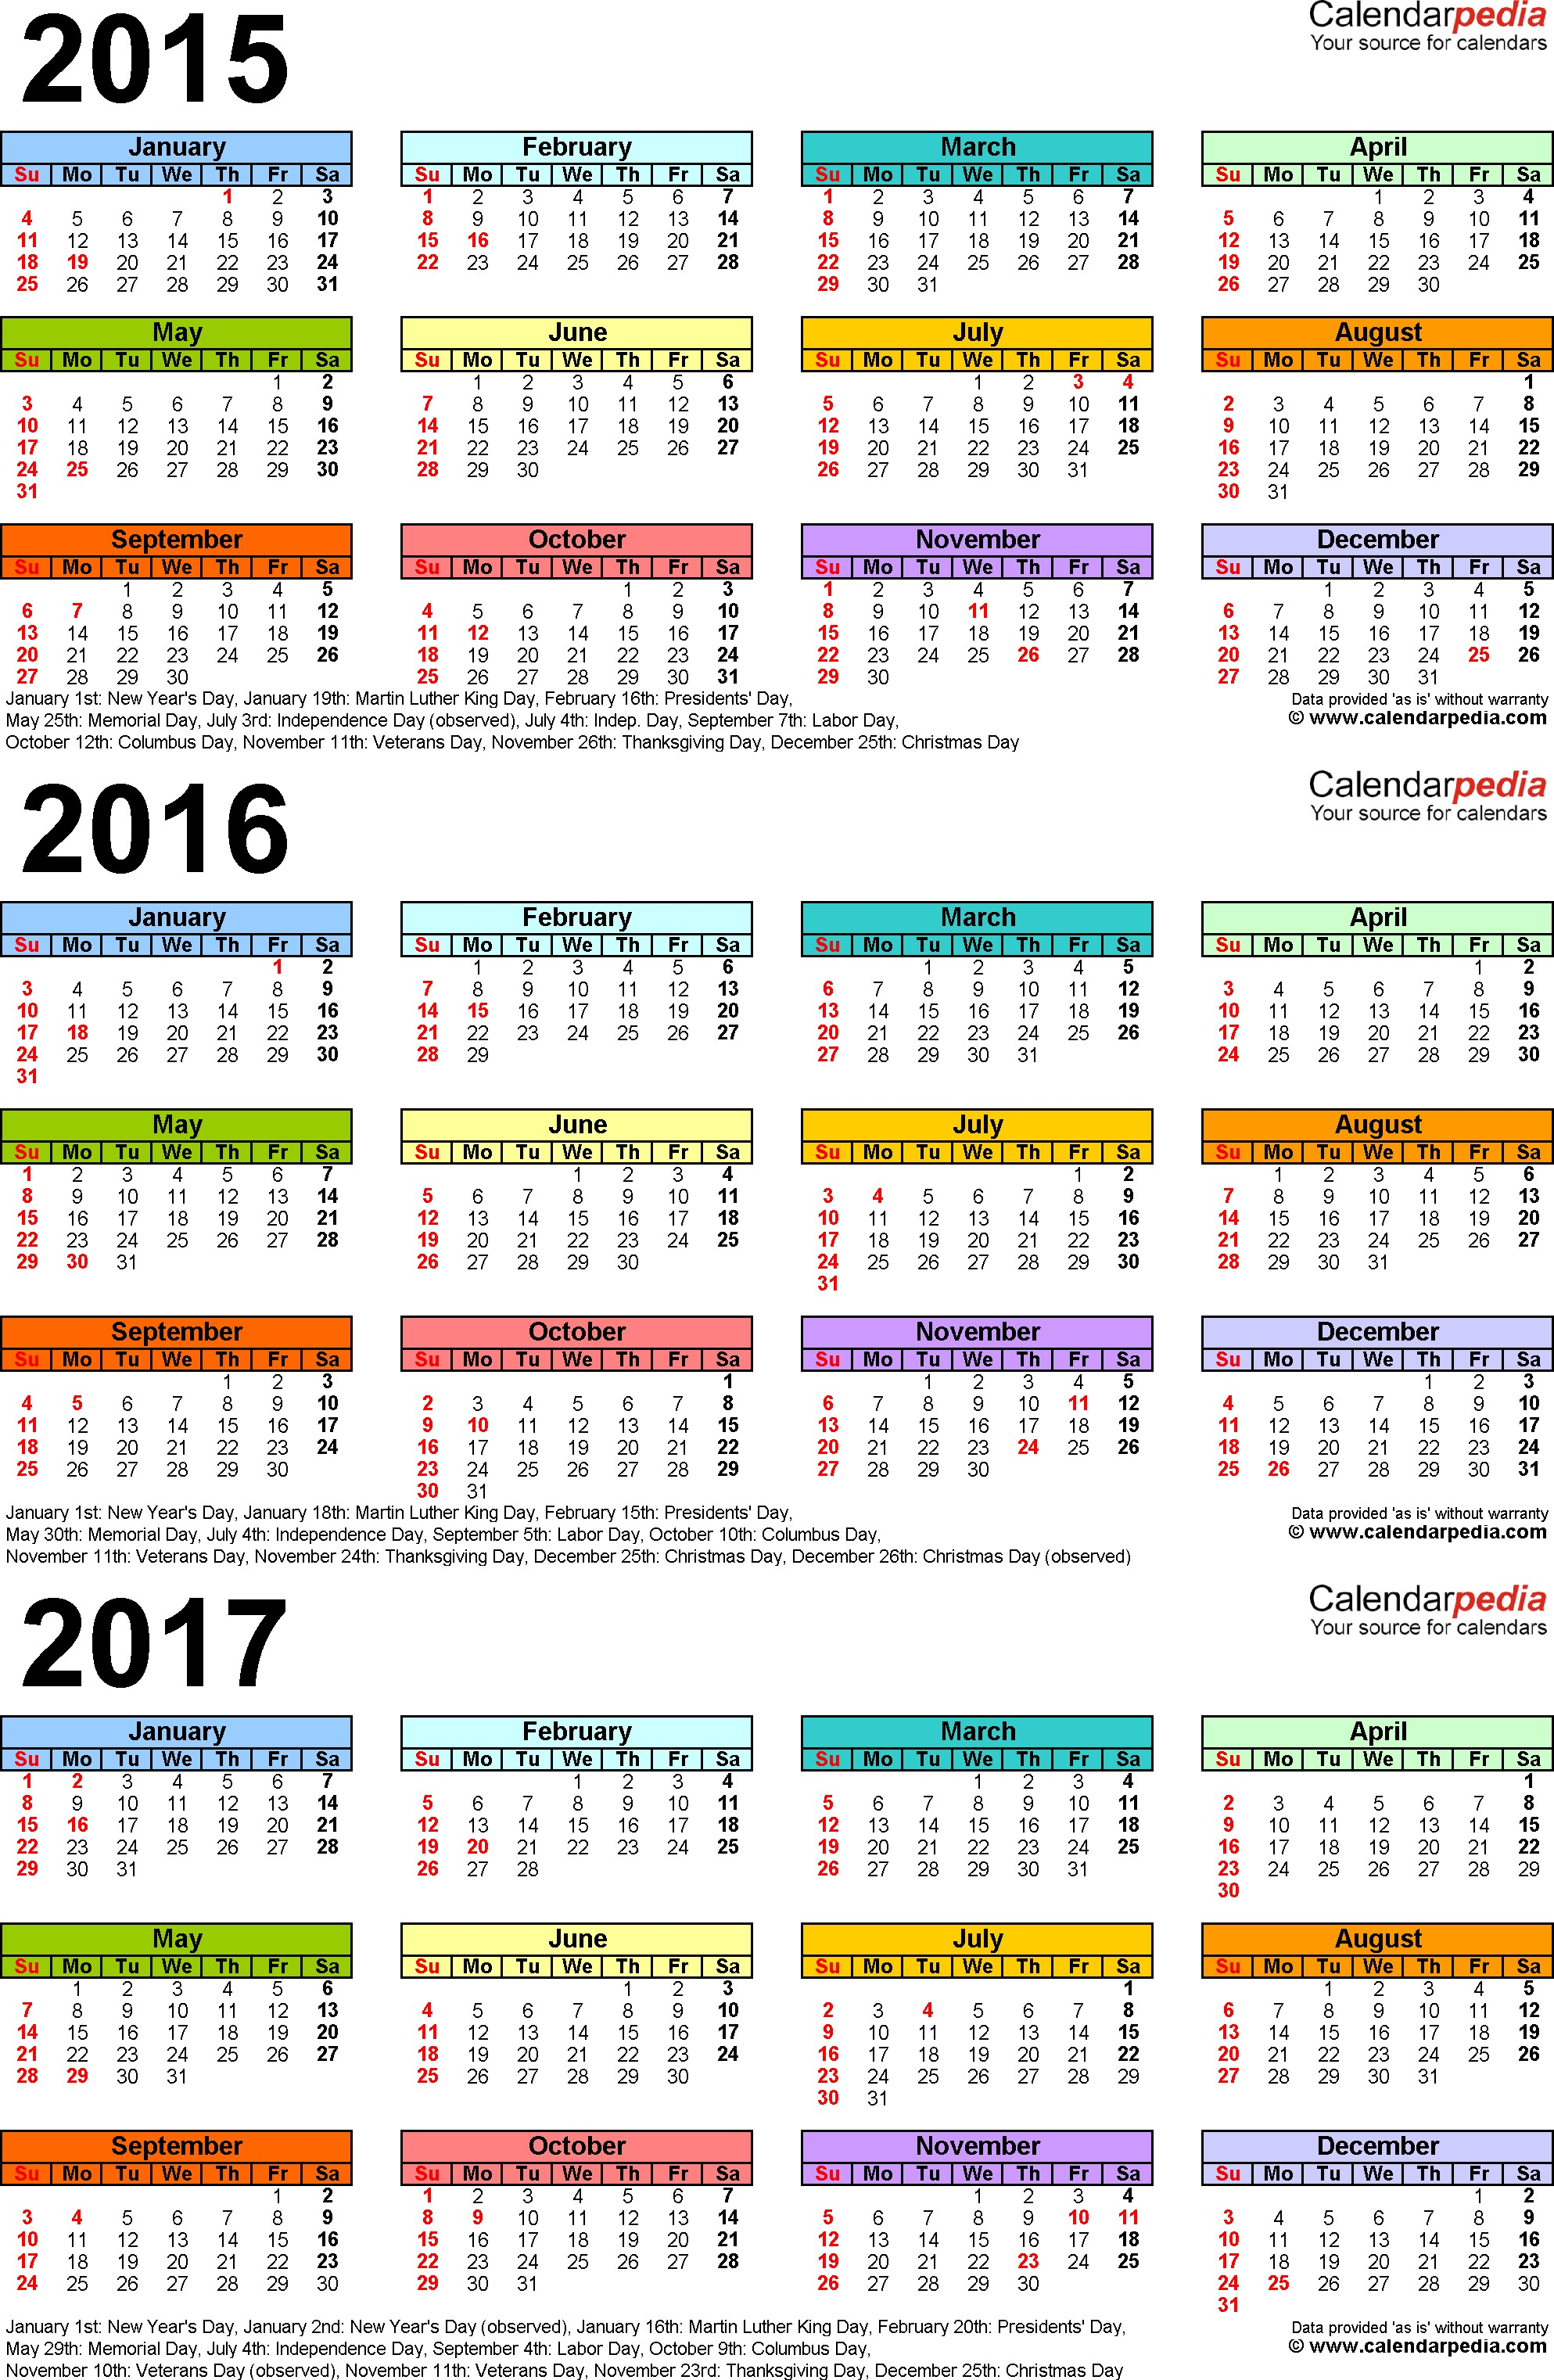 Calendar January to March 2019 Más Populares 2015 2016 2017 Calendar 4 Three Year Printable Pdf Calendars Of Calendar January to March 2019 Más Caliente Connellsville area Sd